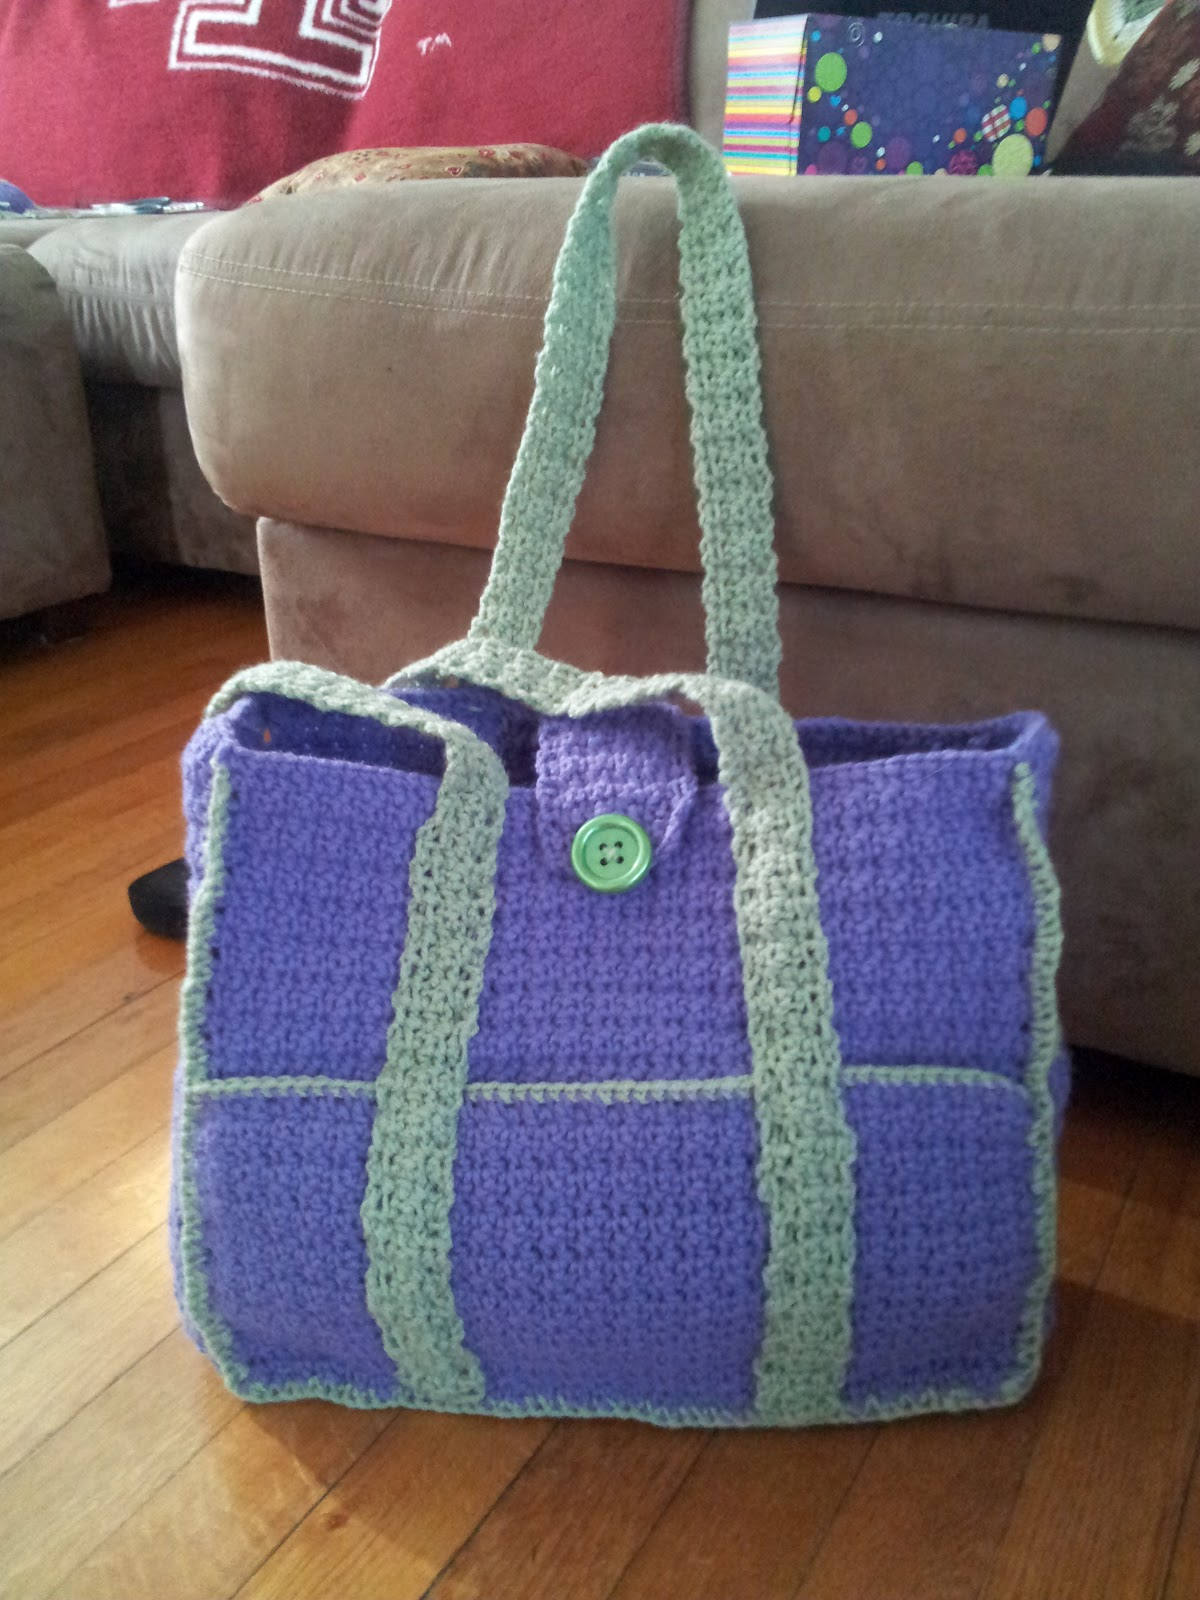 Crochet Dice Bag Pattern : Ratchit Fratchit Emmers: Crocheted Creation - Diaper Bag